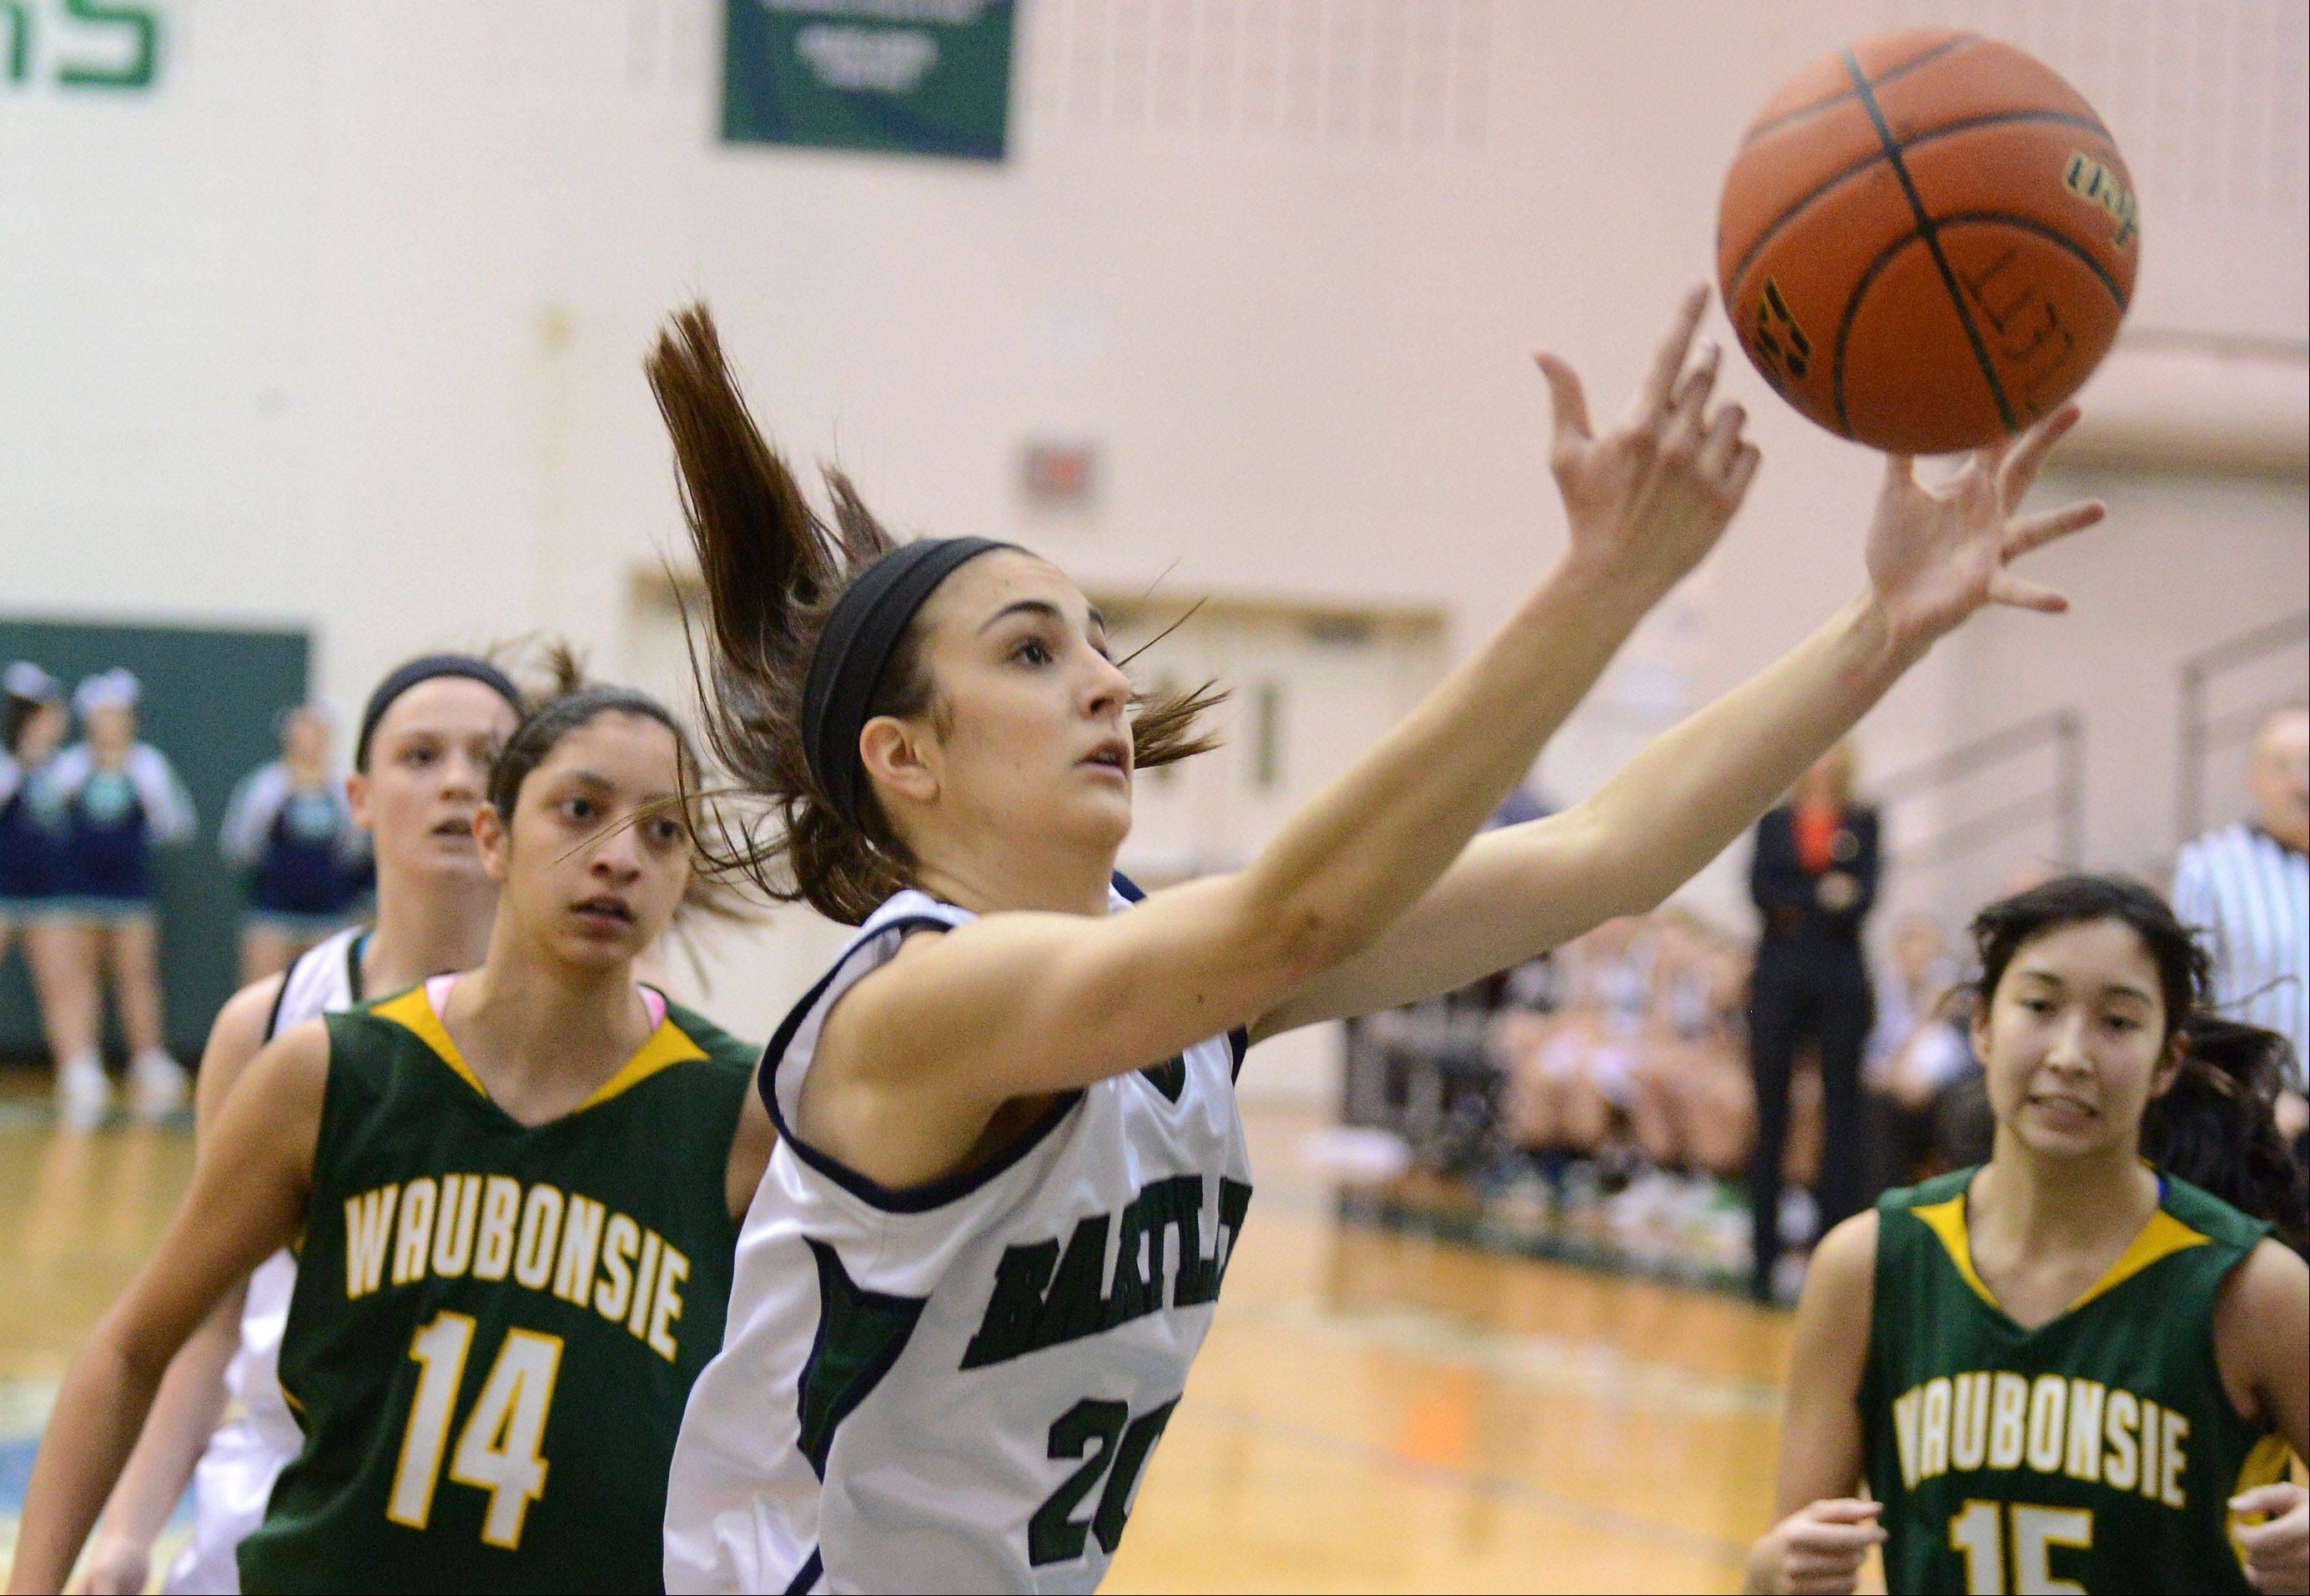 Images: Waubonsie Valley vs. Bartlett girls basketball